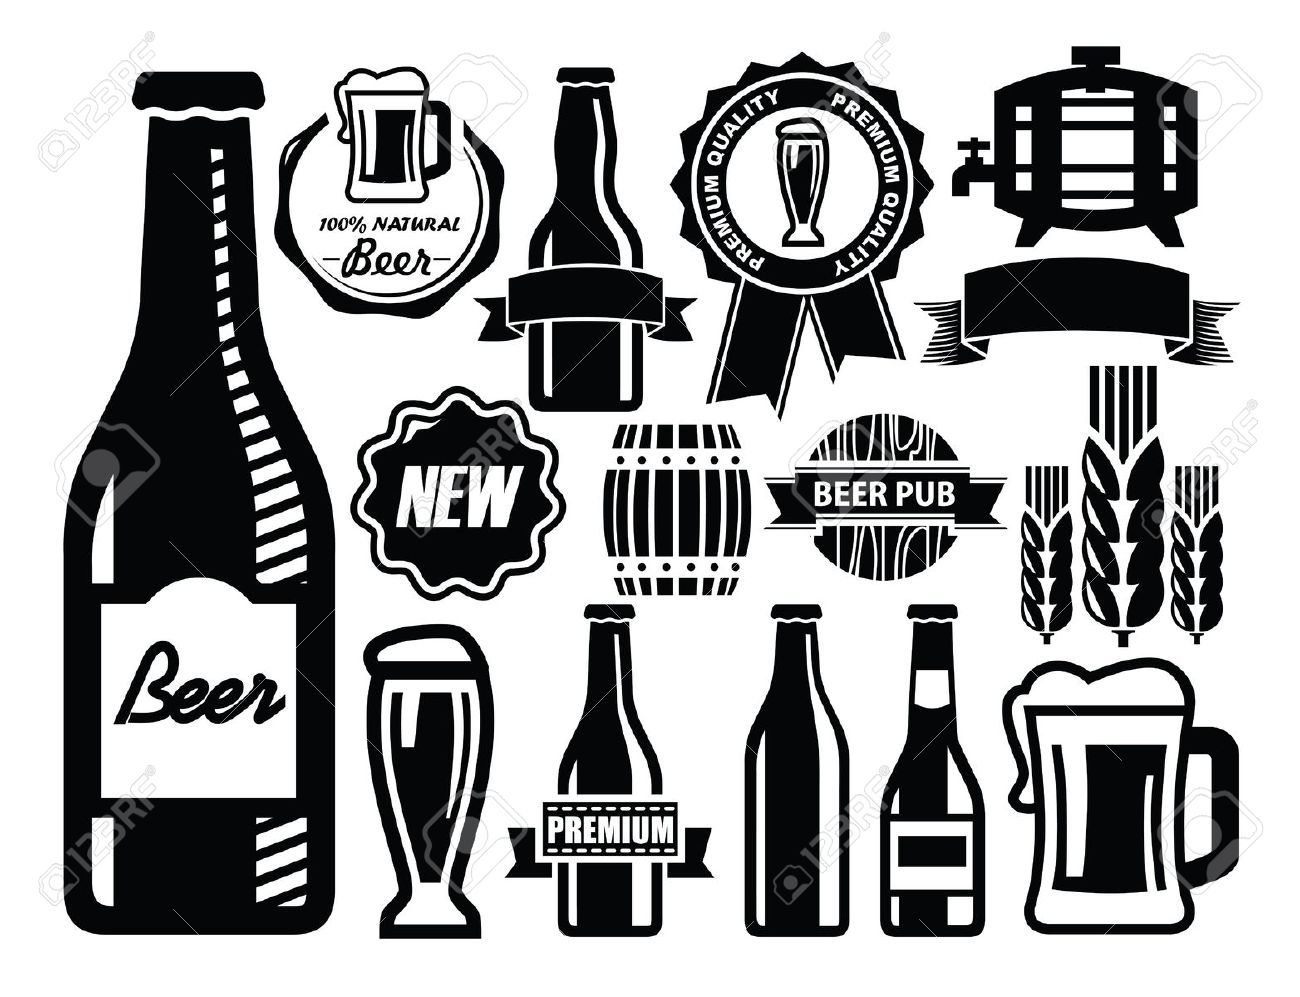 Cheers Beer Stock Vector Illustration And Royalty Free